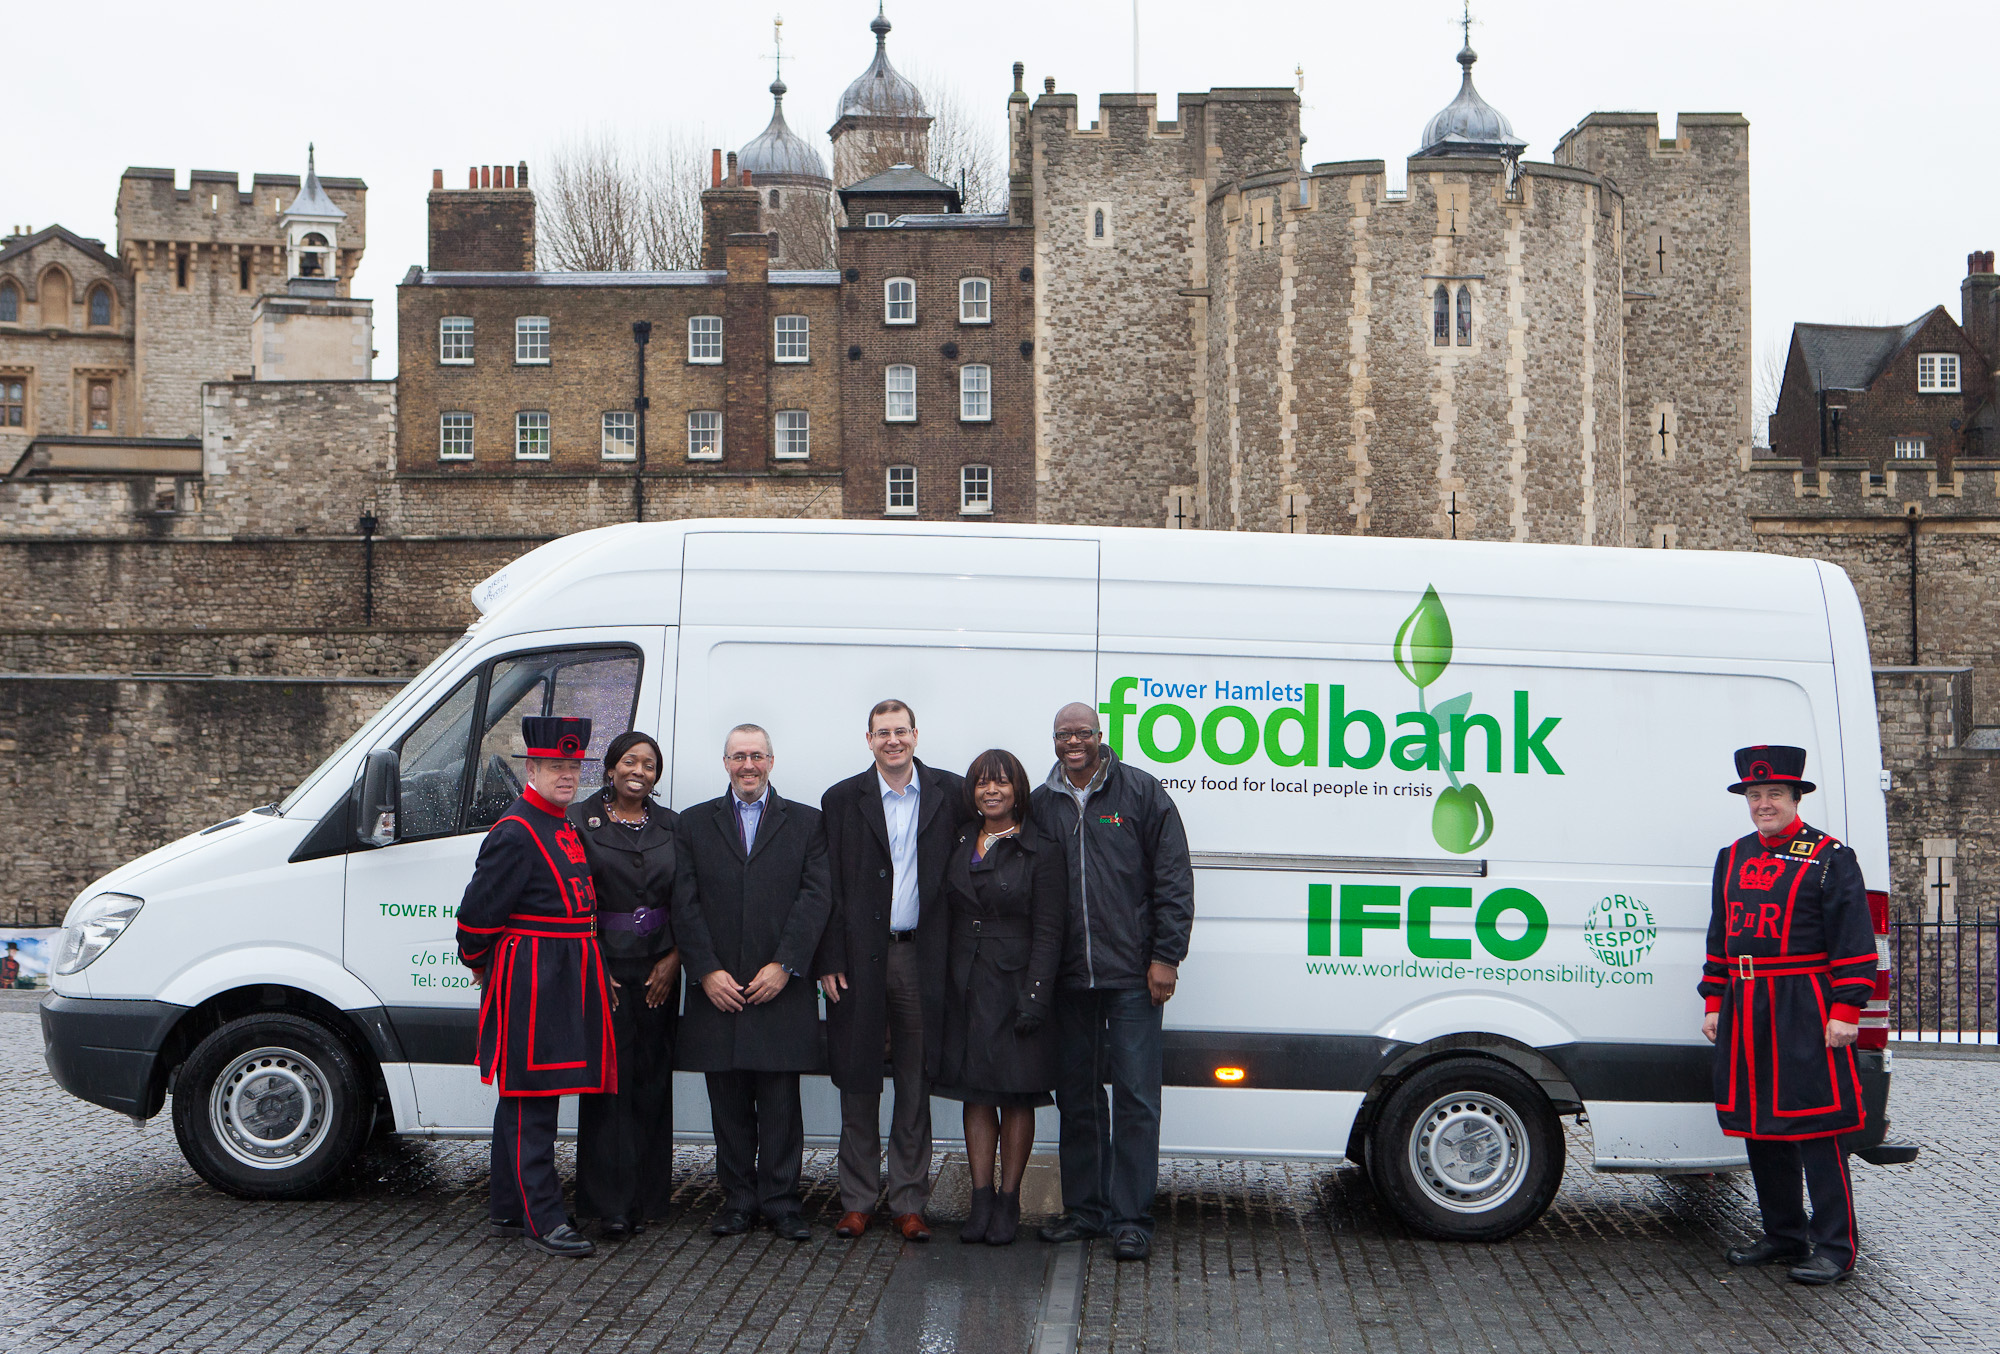 IFCO supports the Tower Hamlets Foodbank